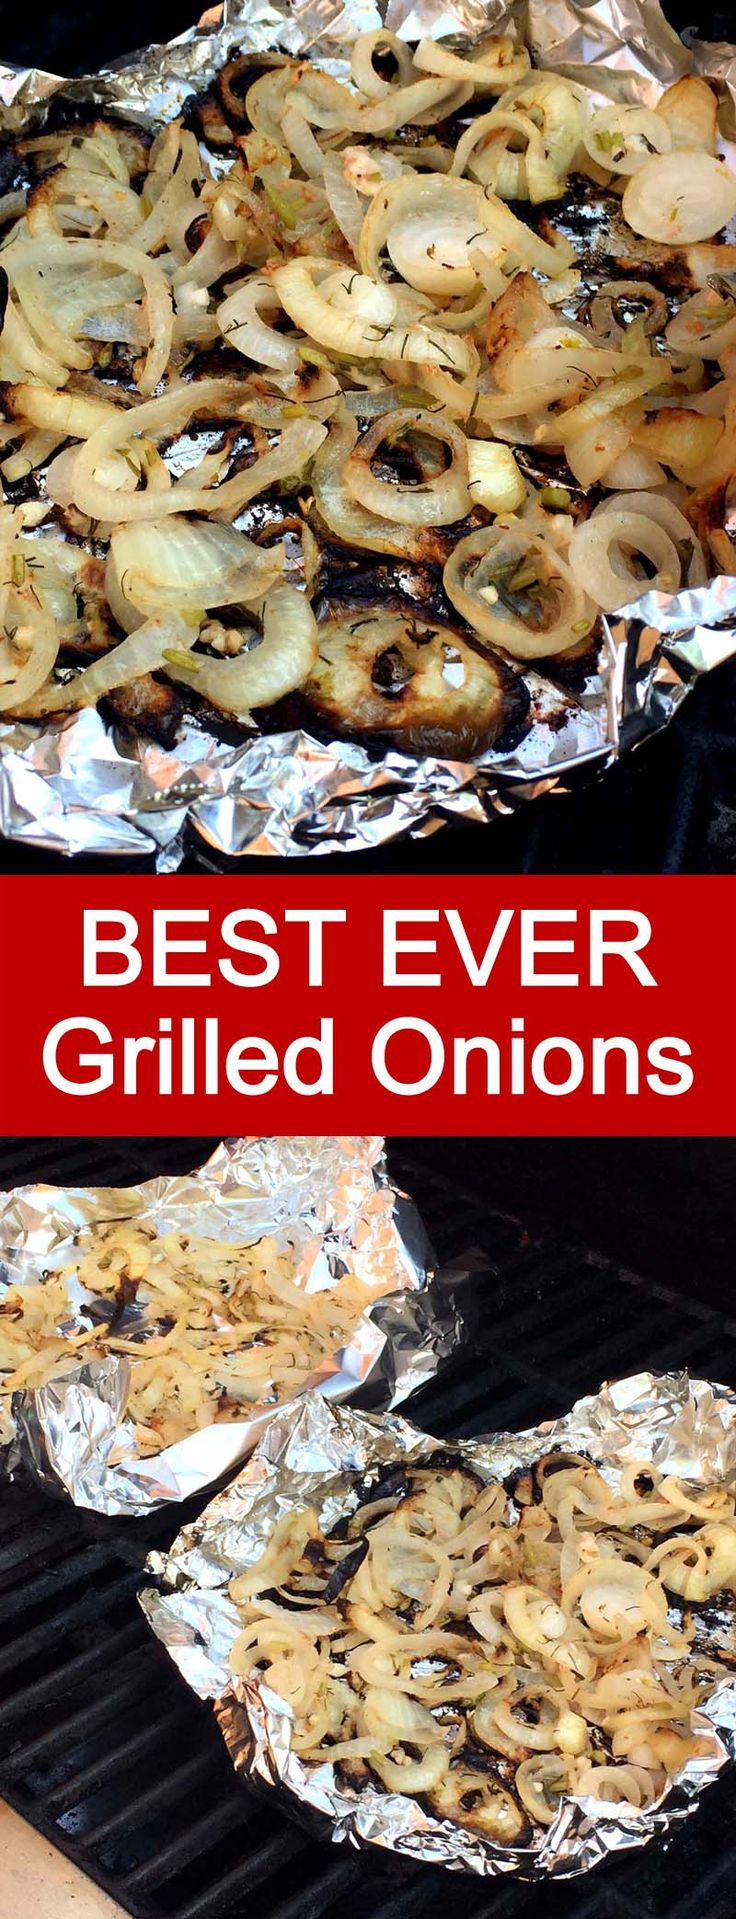 This grilled onion slices are amazing! They are marinated before grilling, so they are super flavorful! Grilling them in foil is so smart!